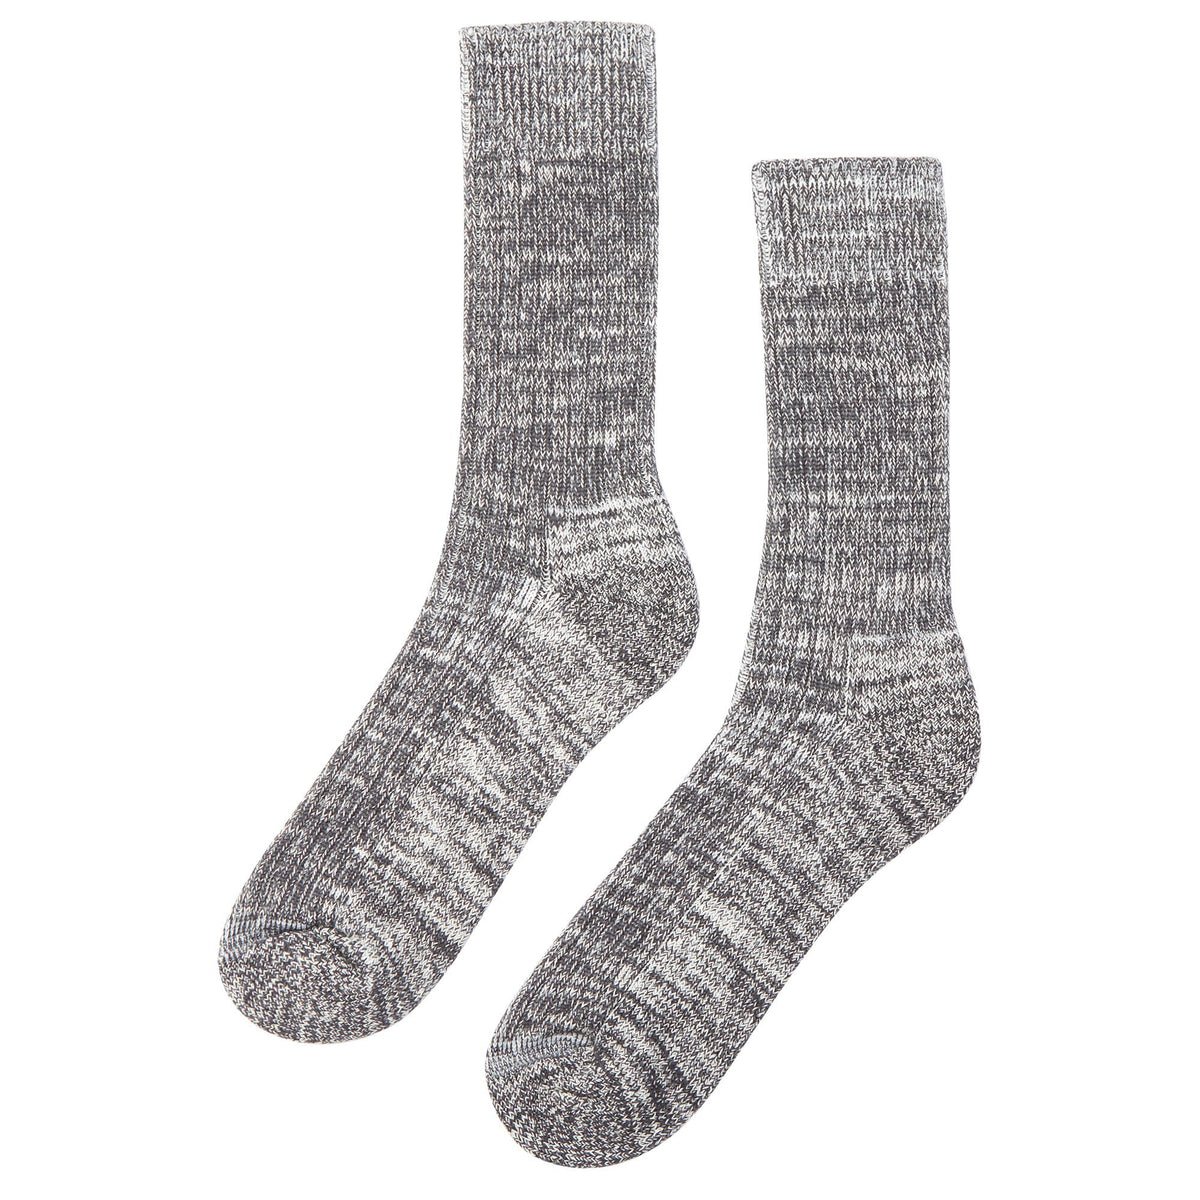 Walking Socks Slate/White - Community Clothing